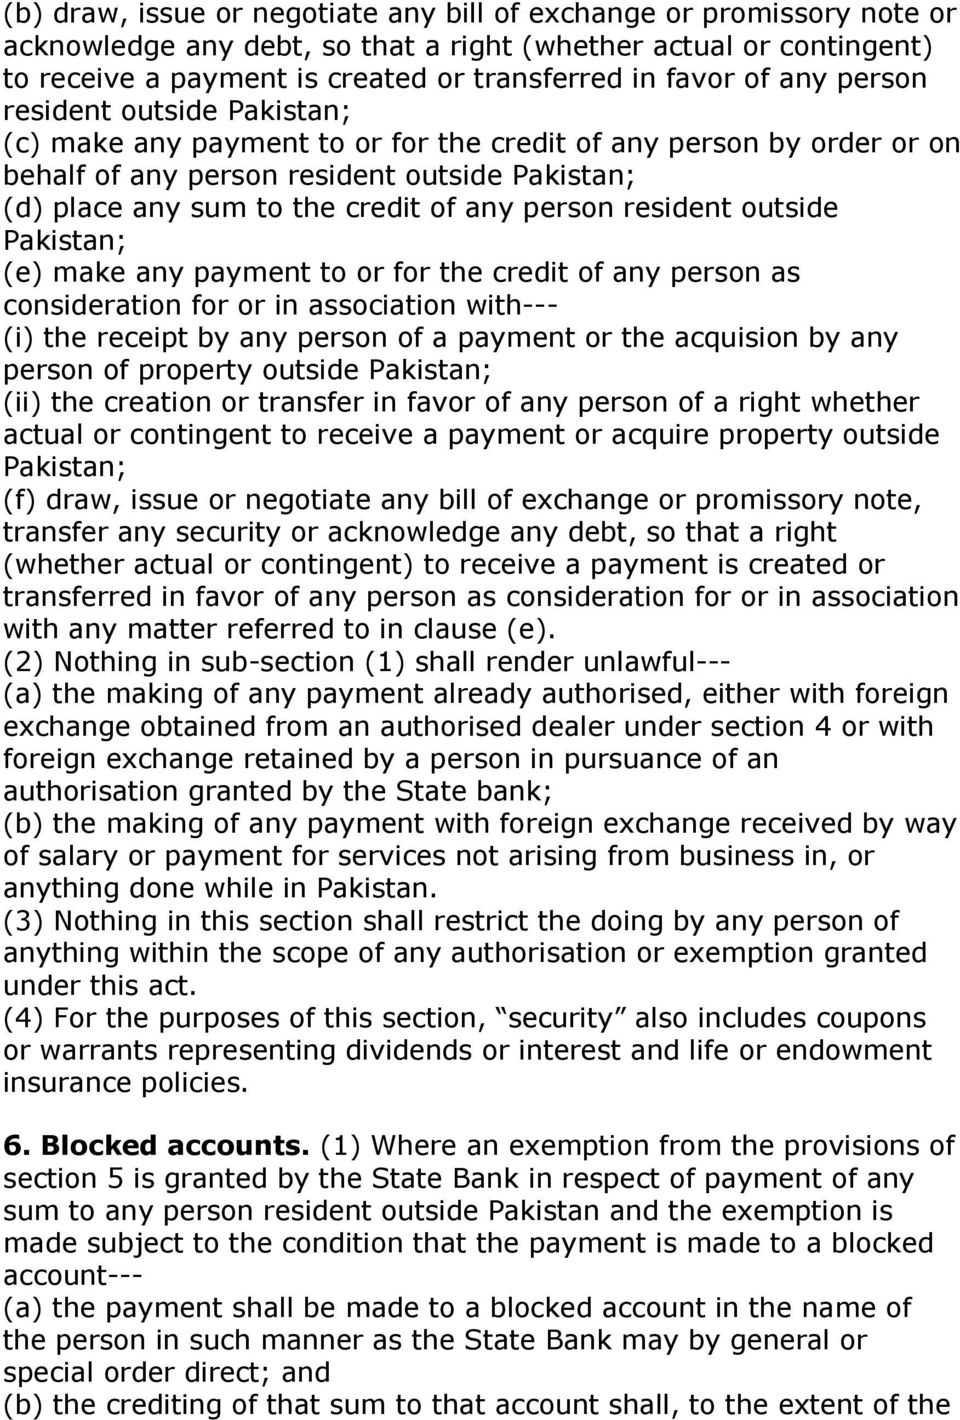 person resident outside Pakistan; (e) make any payment to or for the credit of any person as consideration for or in association with--- (i) the receipt by any person of a payment or the acquision by